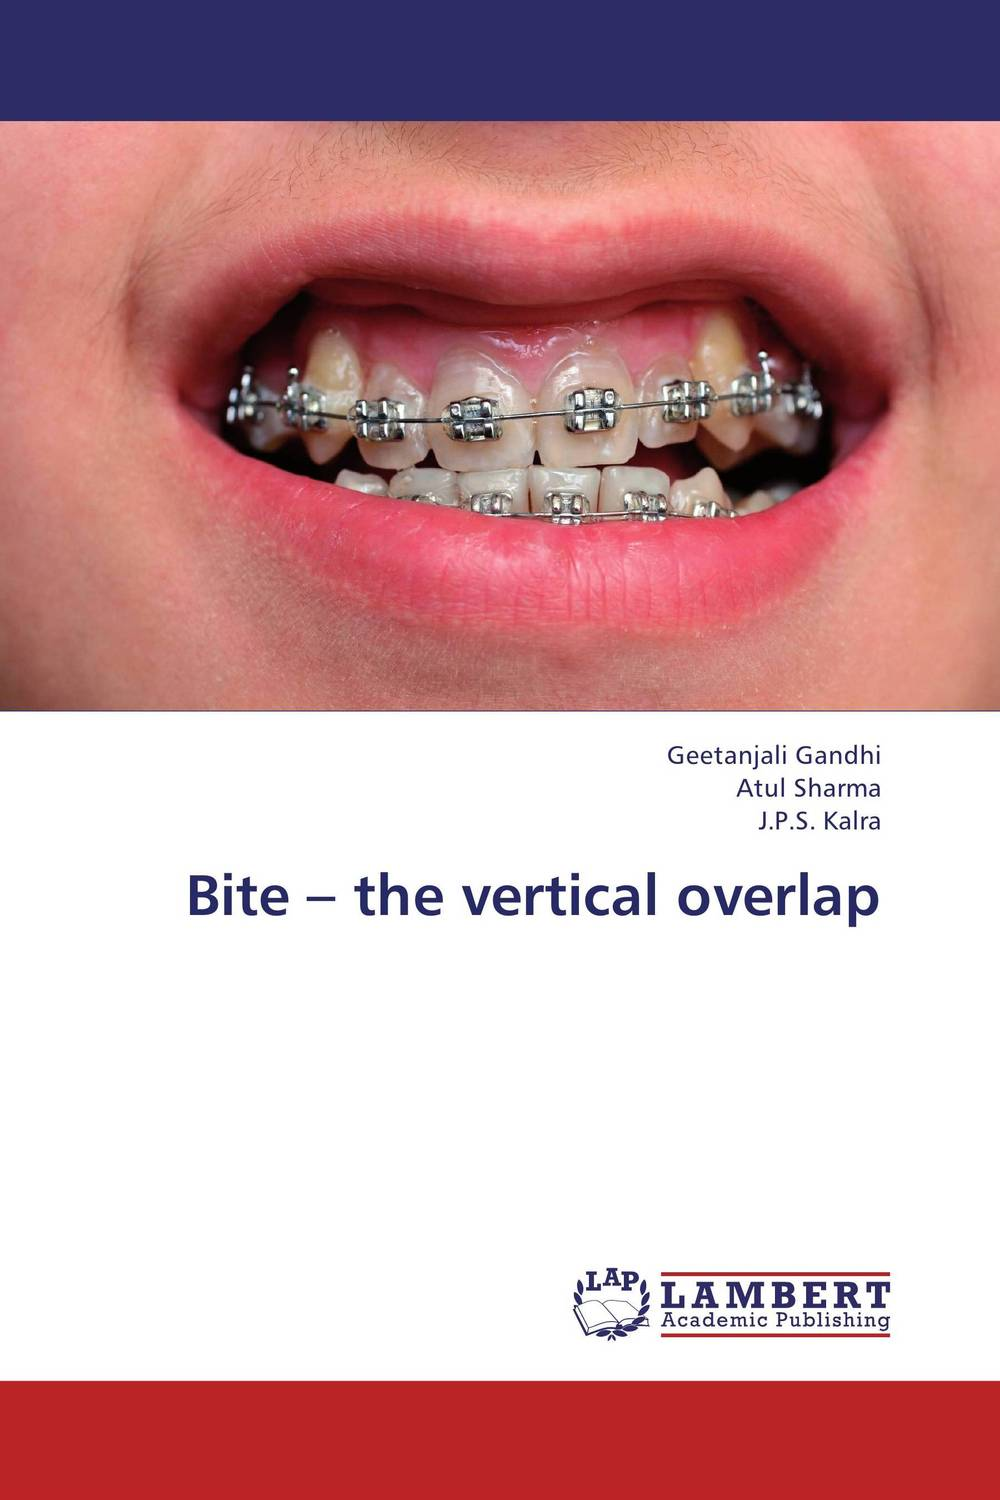 Bite – the vertical overlap